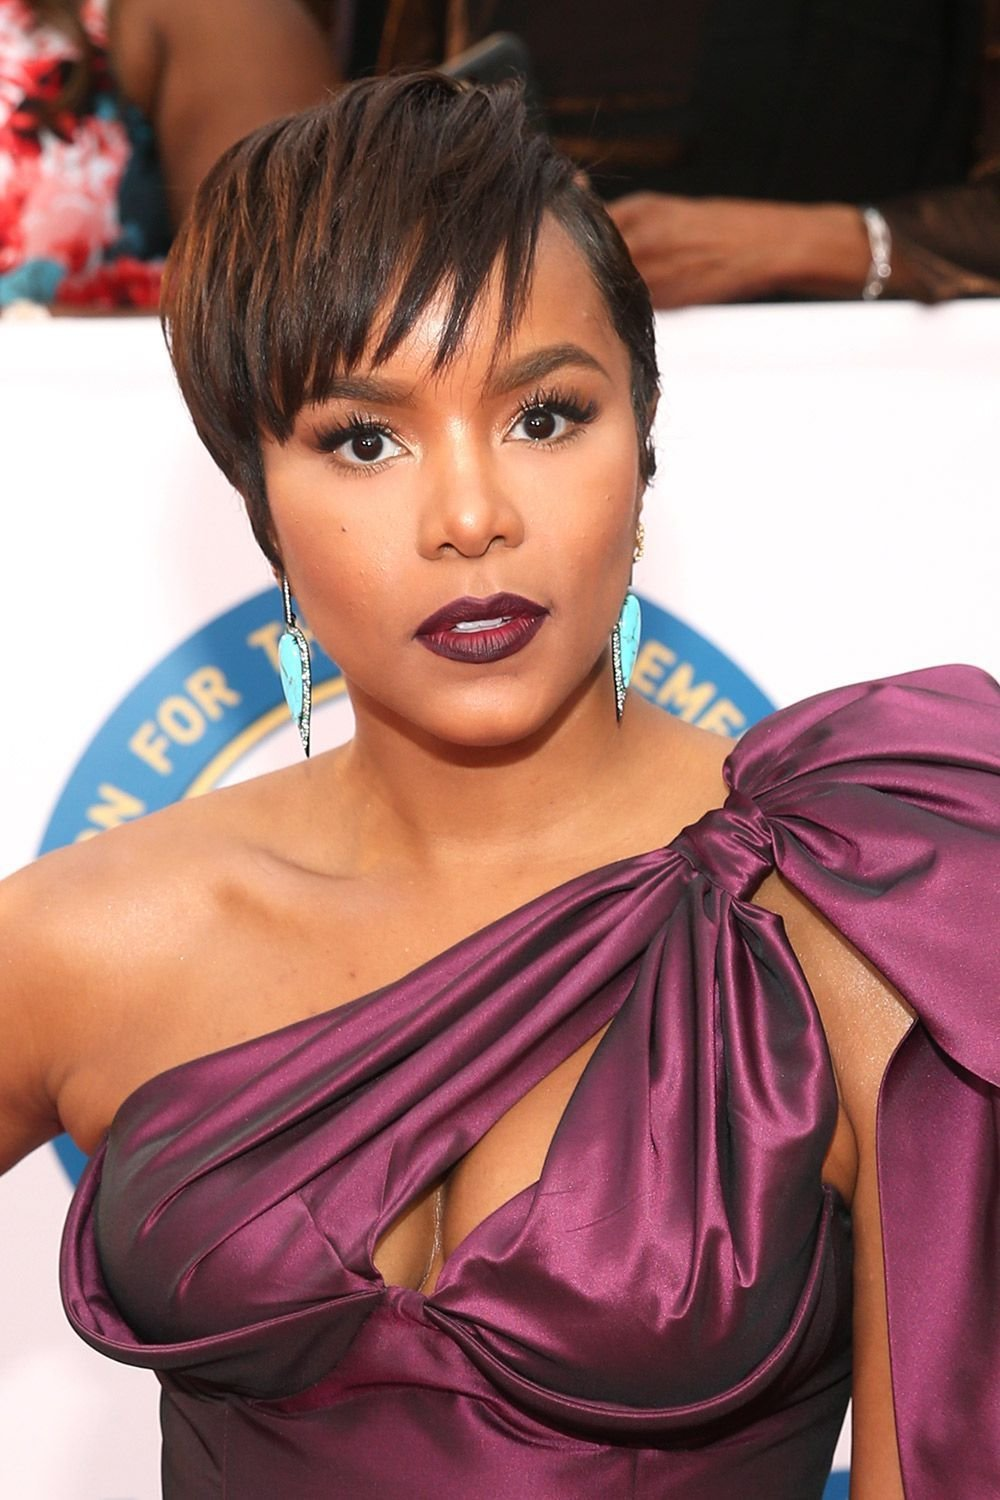 The Best 70 Best Pixie Cut Hairstyle Ideas 2019 Cute Celebrity Pictures